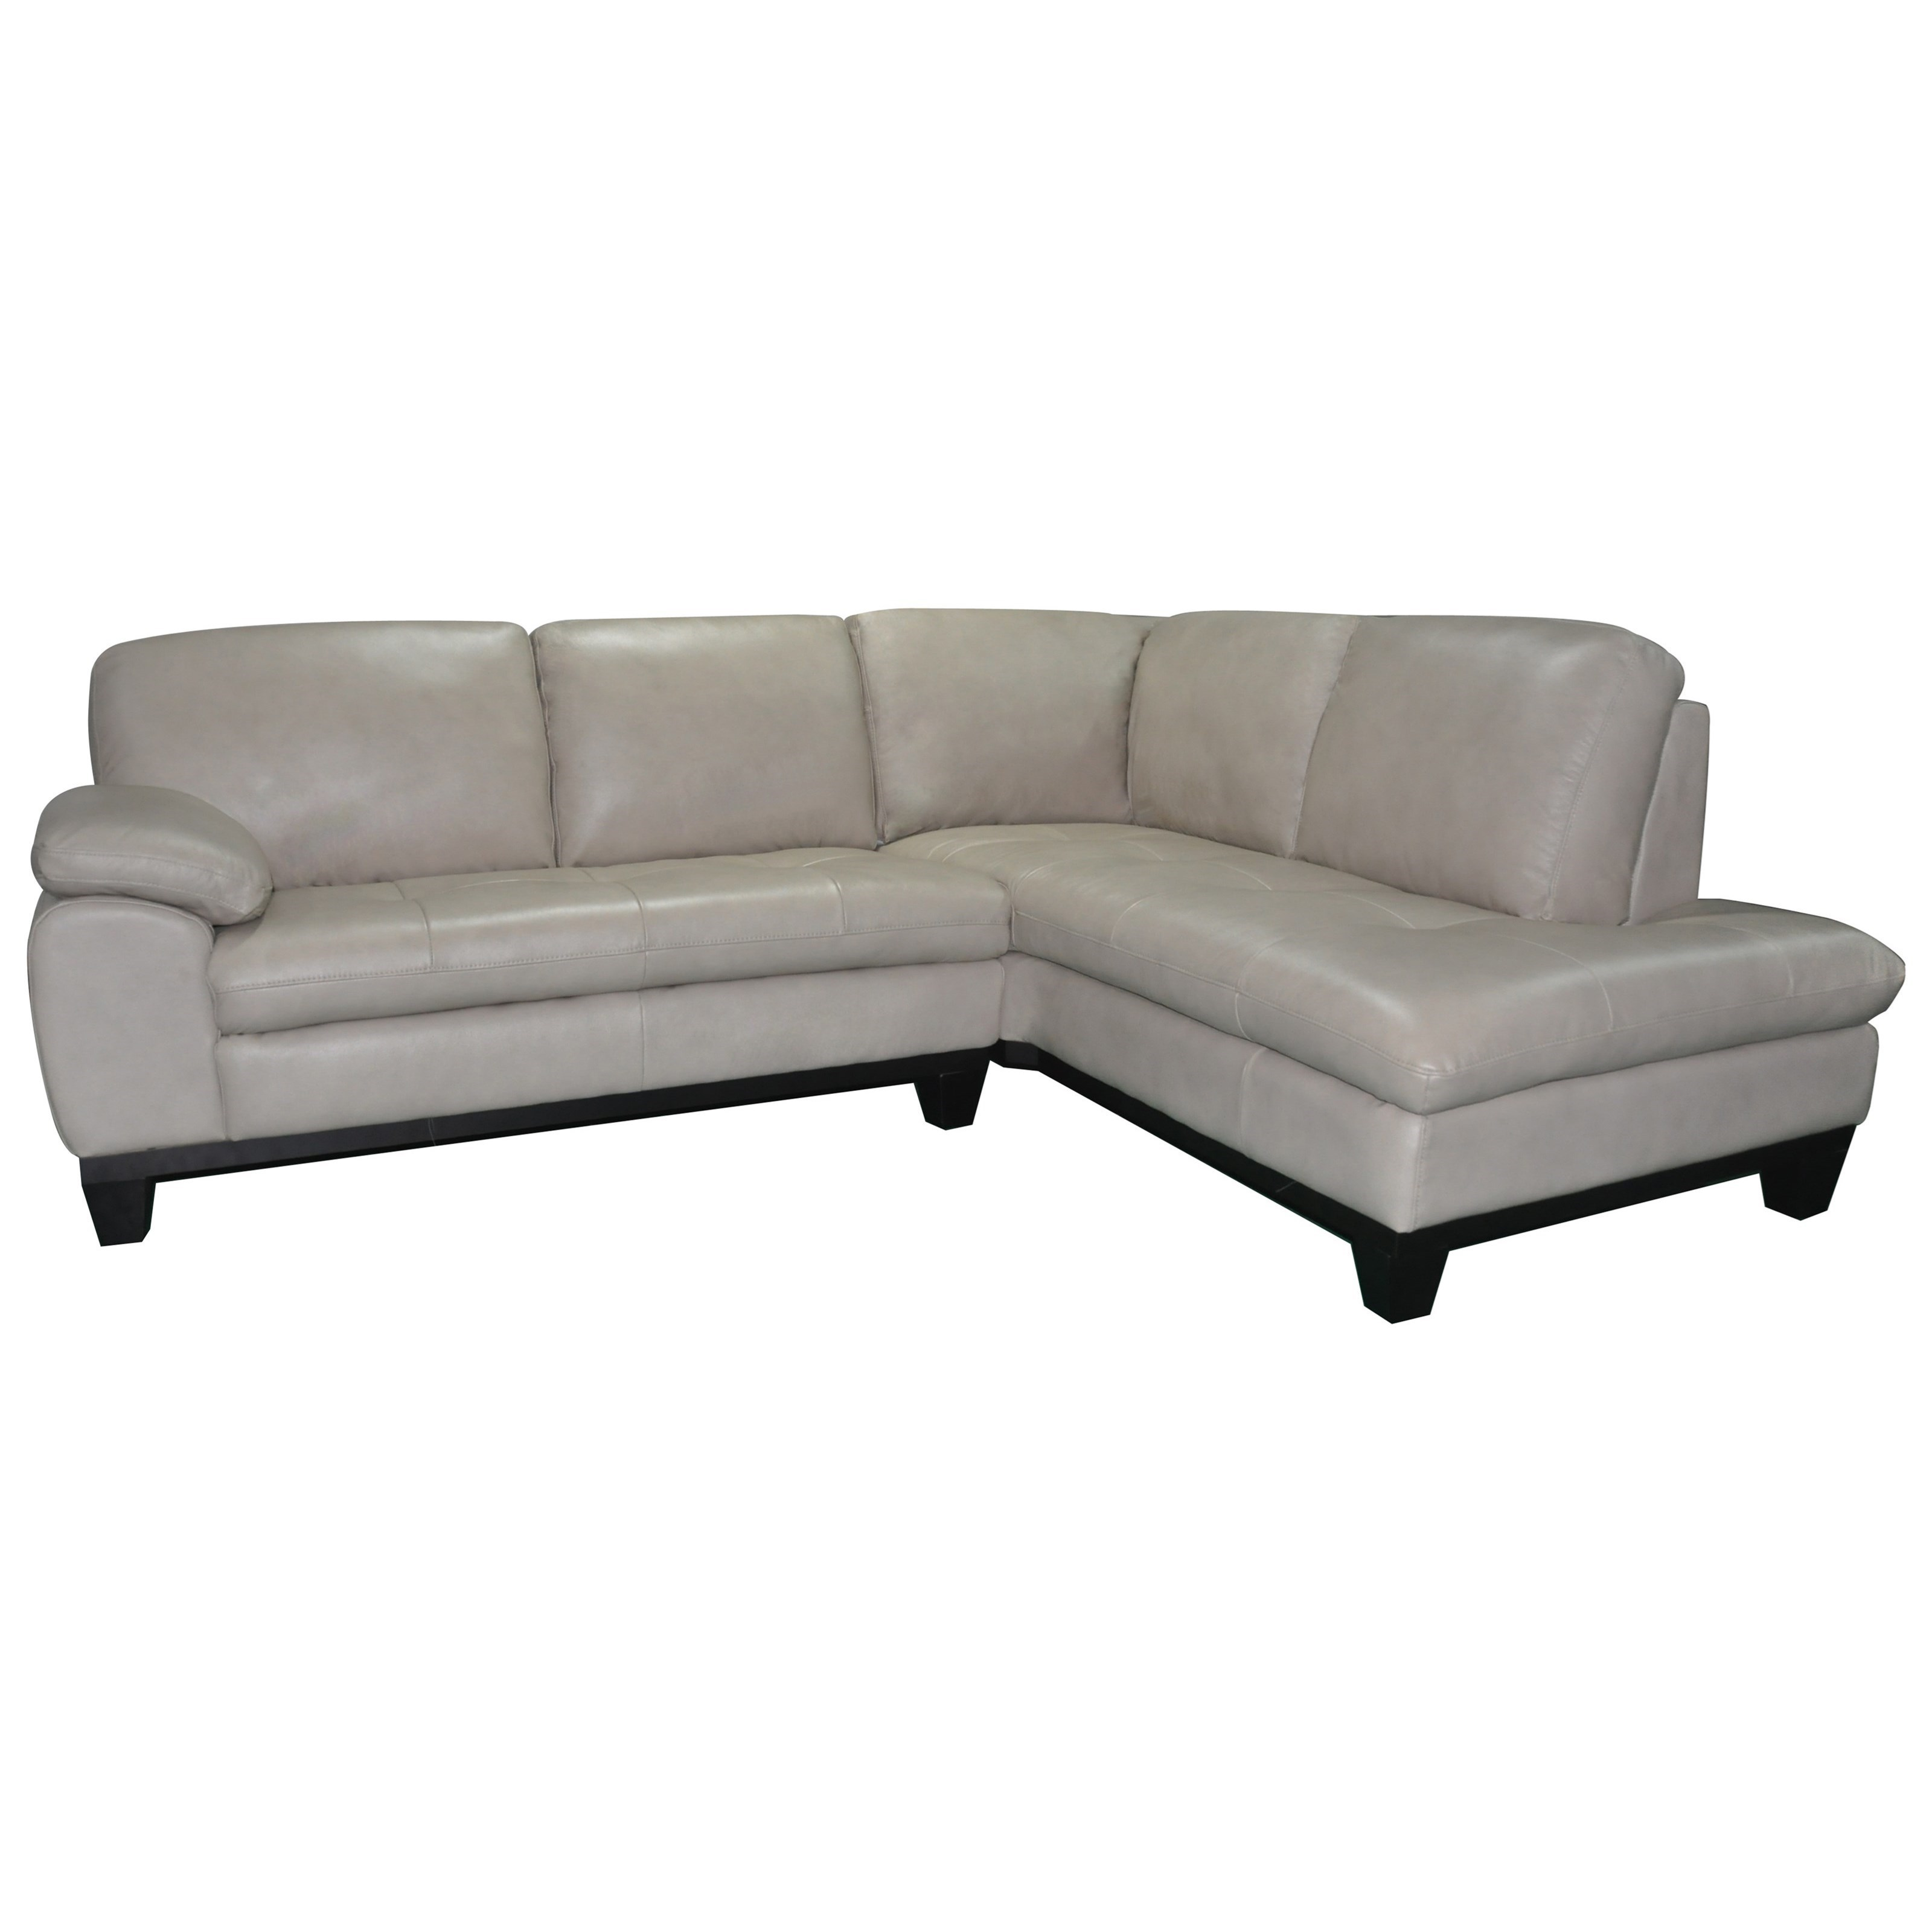 1263 Two Piece Sectional Sofa With RAF Chaise   Becker Furniture World   Sectional  Sofas